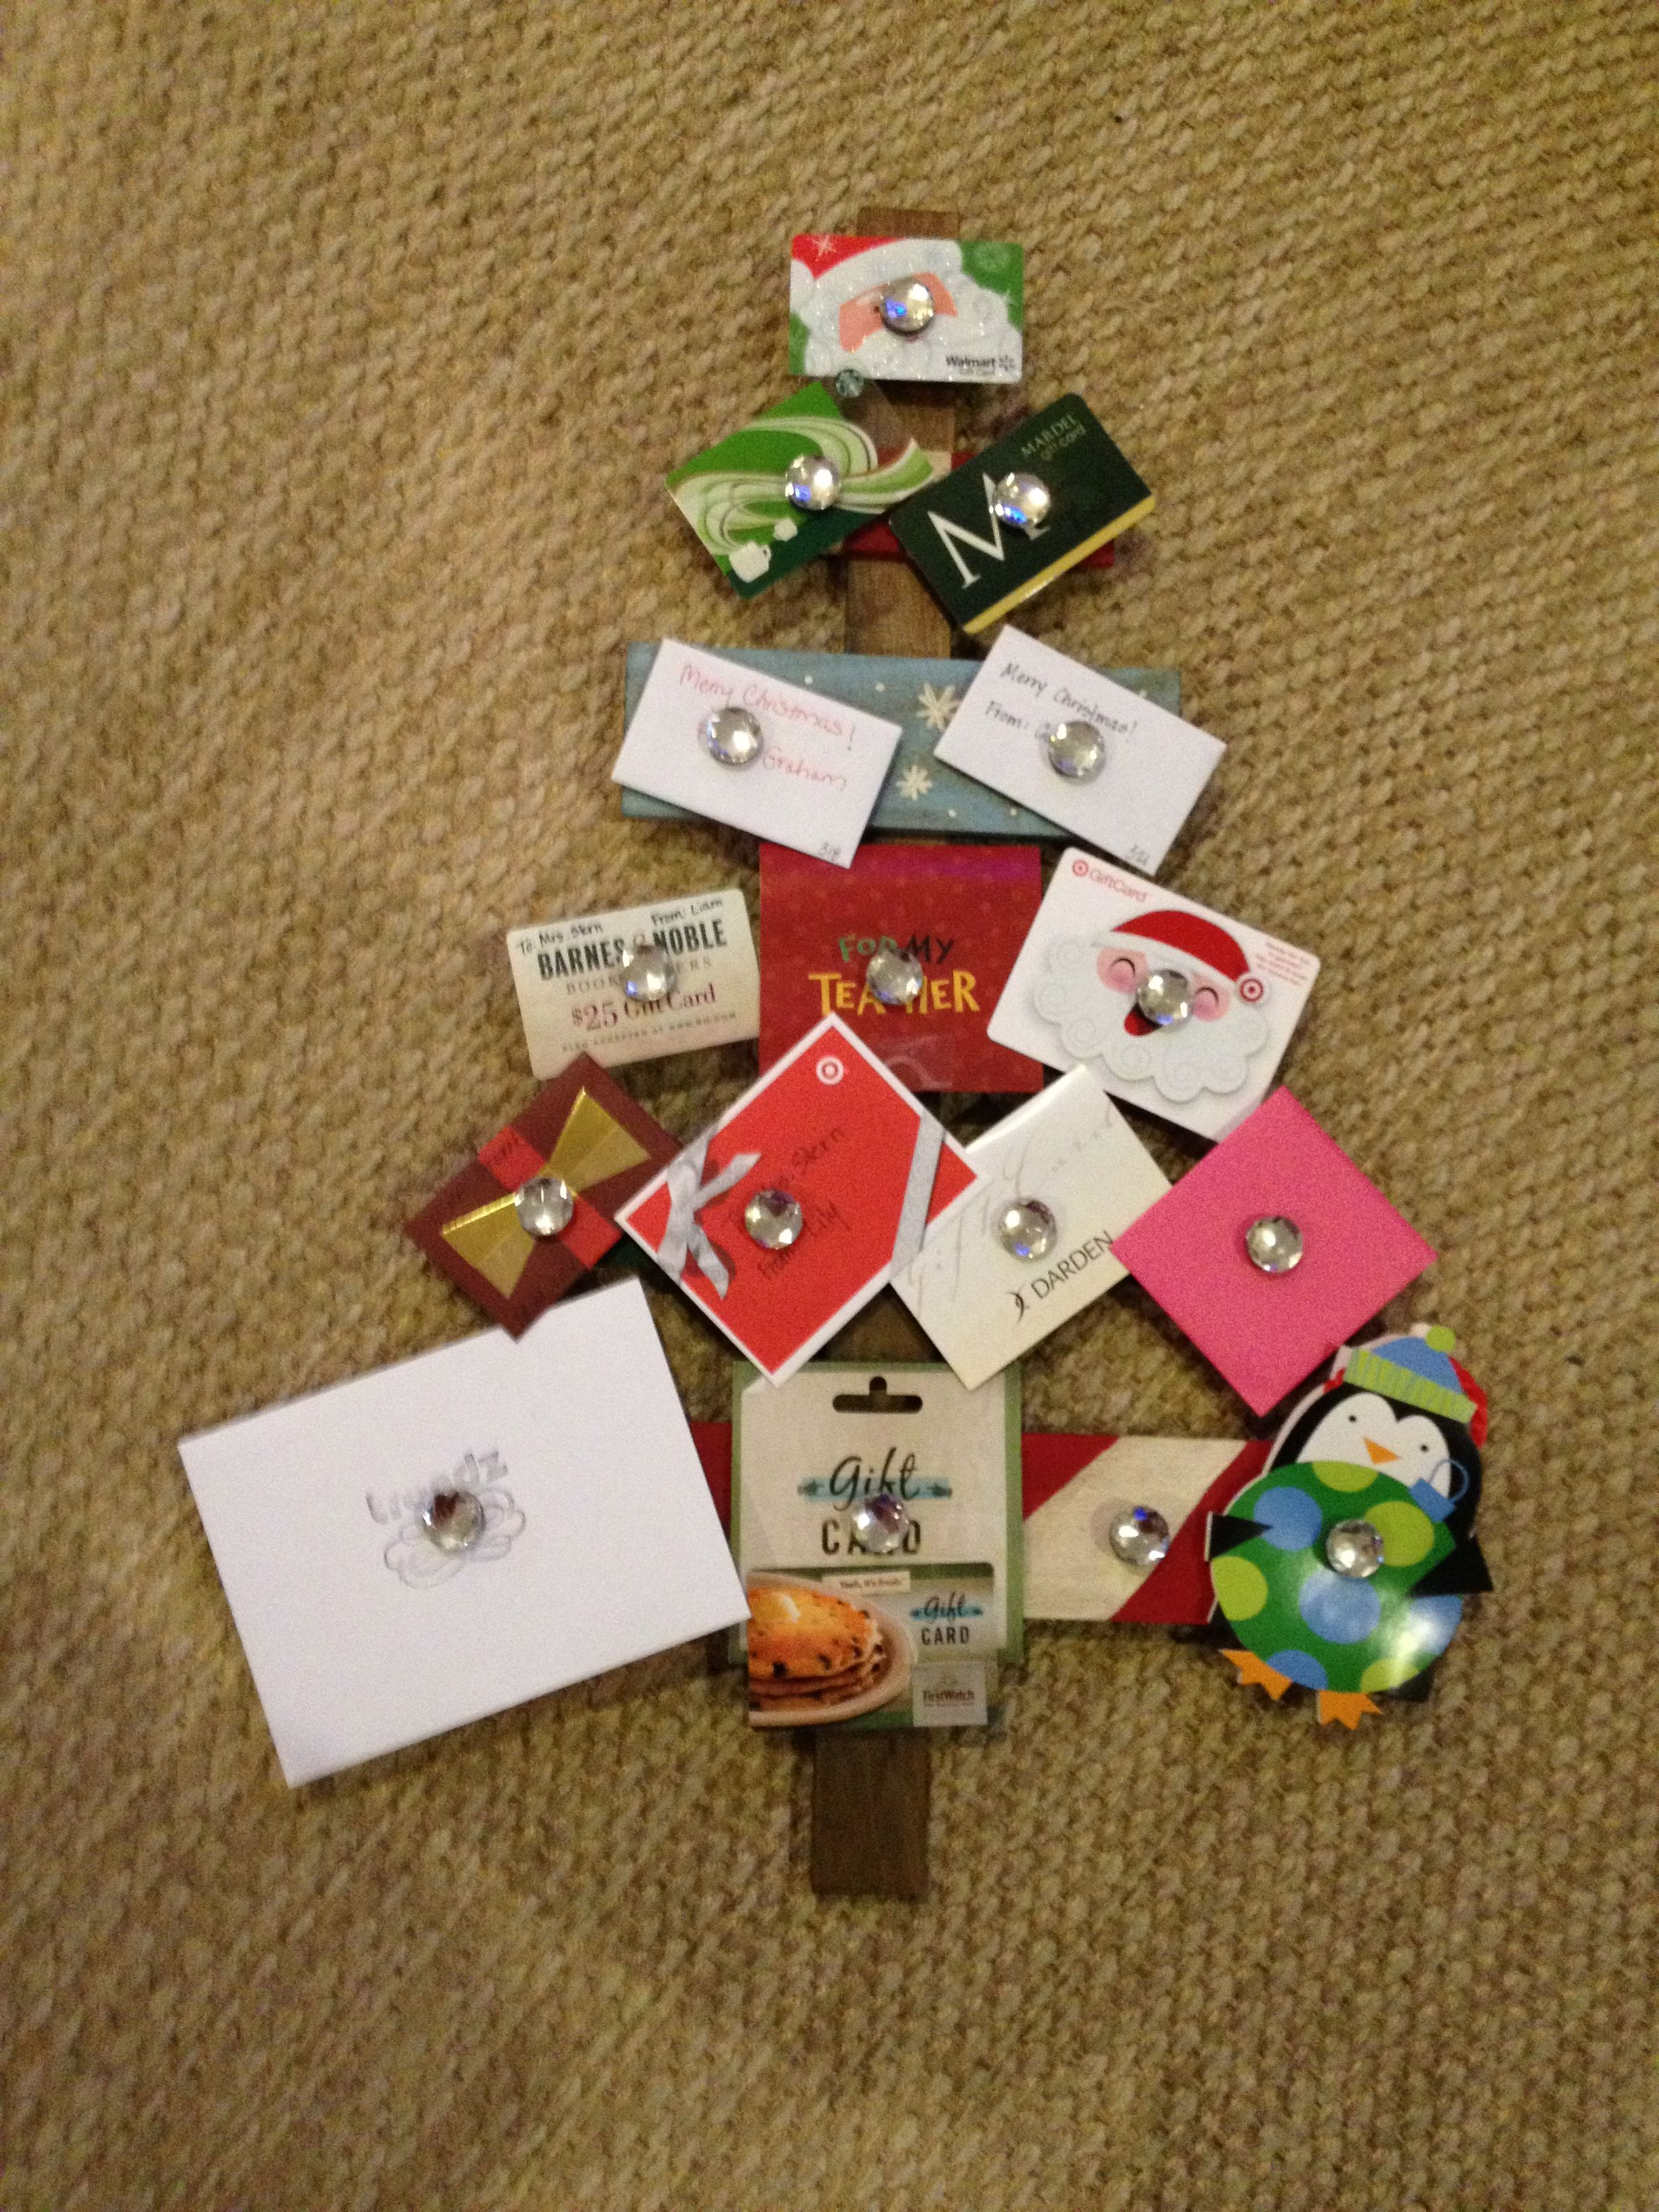 Holiday Gift Card Tree For Teachers Made With Plywood Boards Gift Card Tree Gift Card Displays Gift Card Bouquet